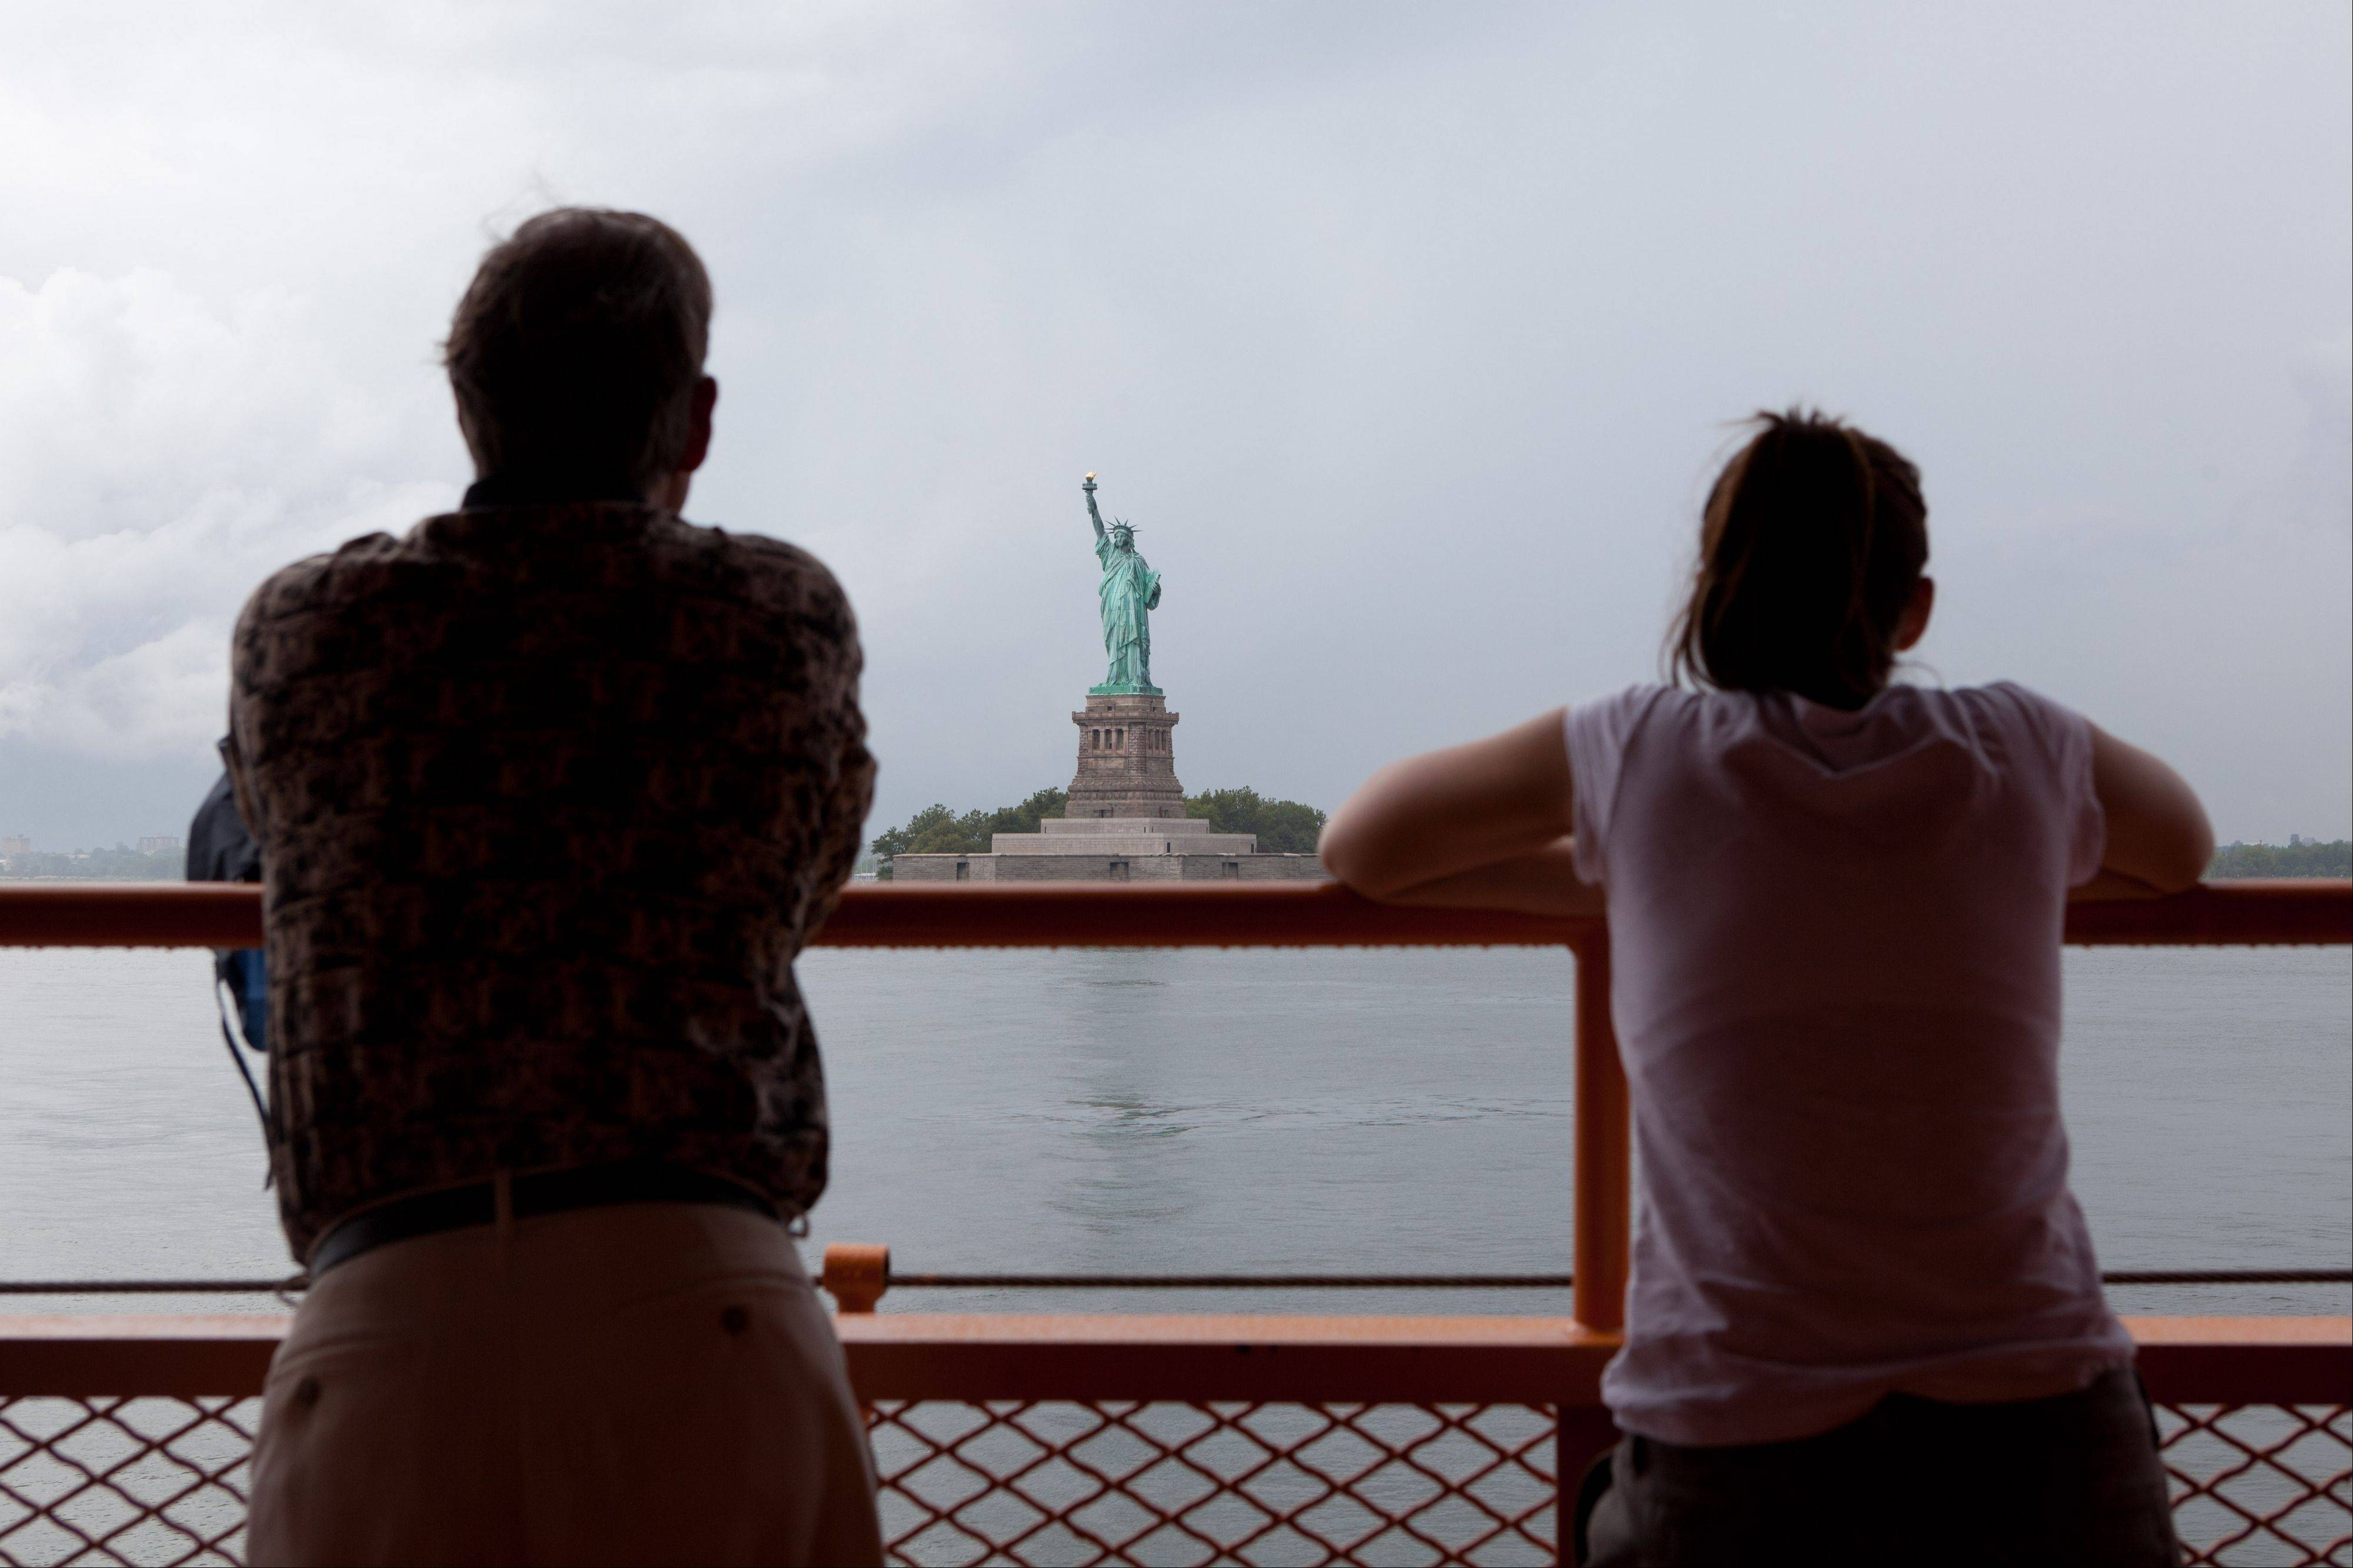 Staten Island ferry passengers look out at the Statue of Liberty in New York. The Statue of Liberty, which has been closed to visitors since Superstorm Sandy, recently reopened.